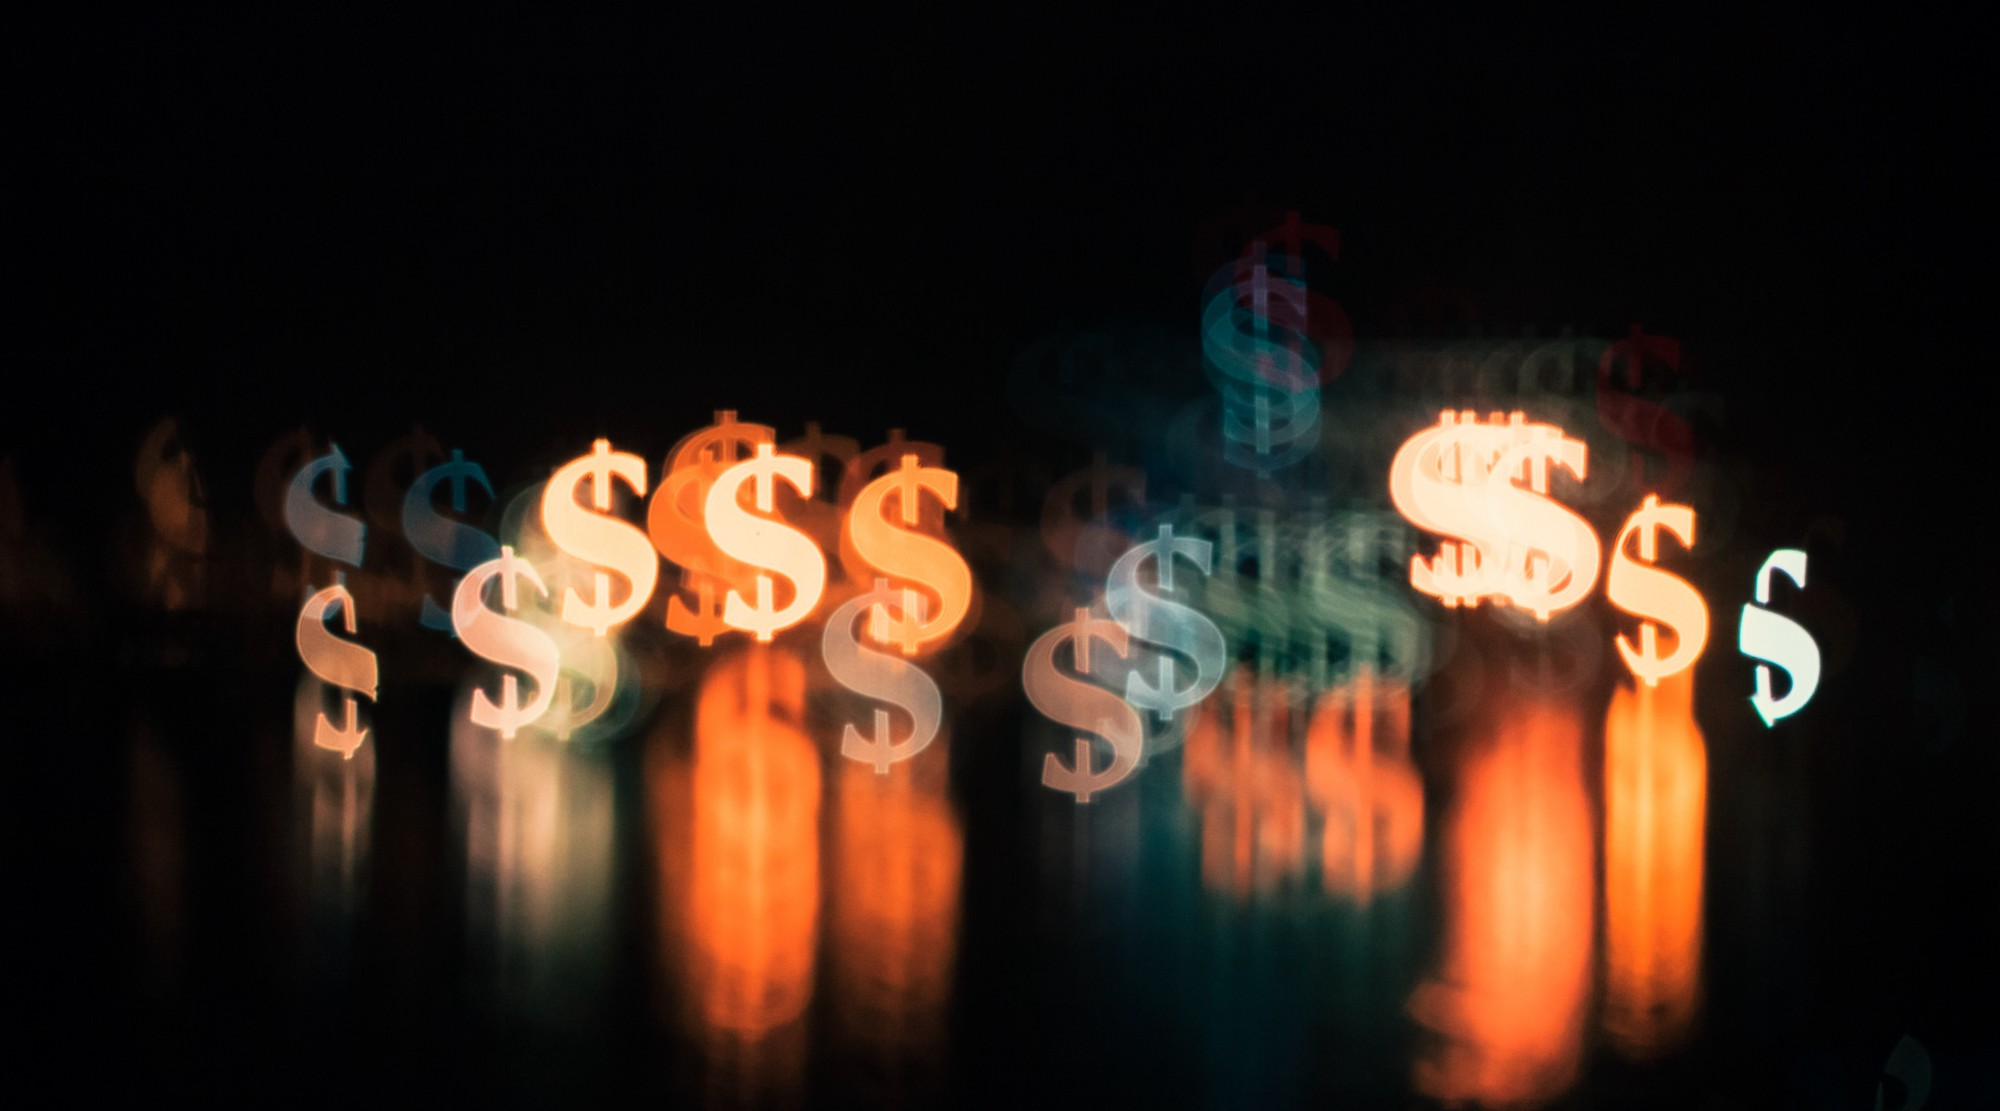 Fuzzed out image of many dollar signs